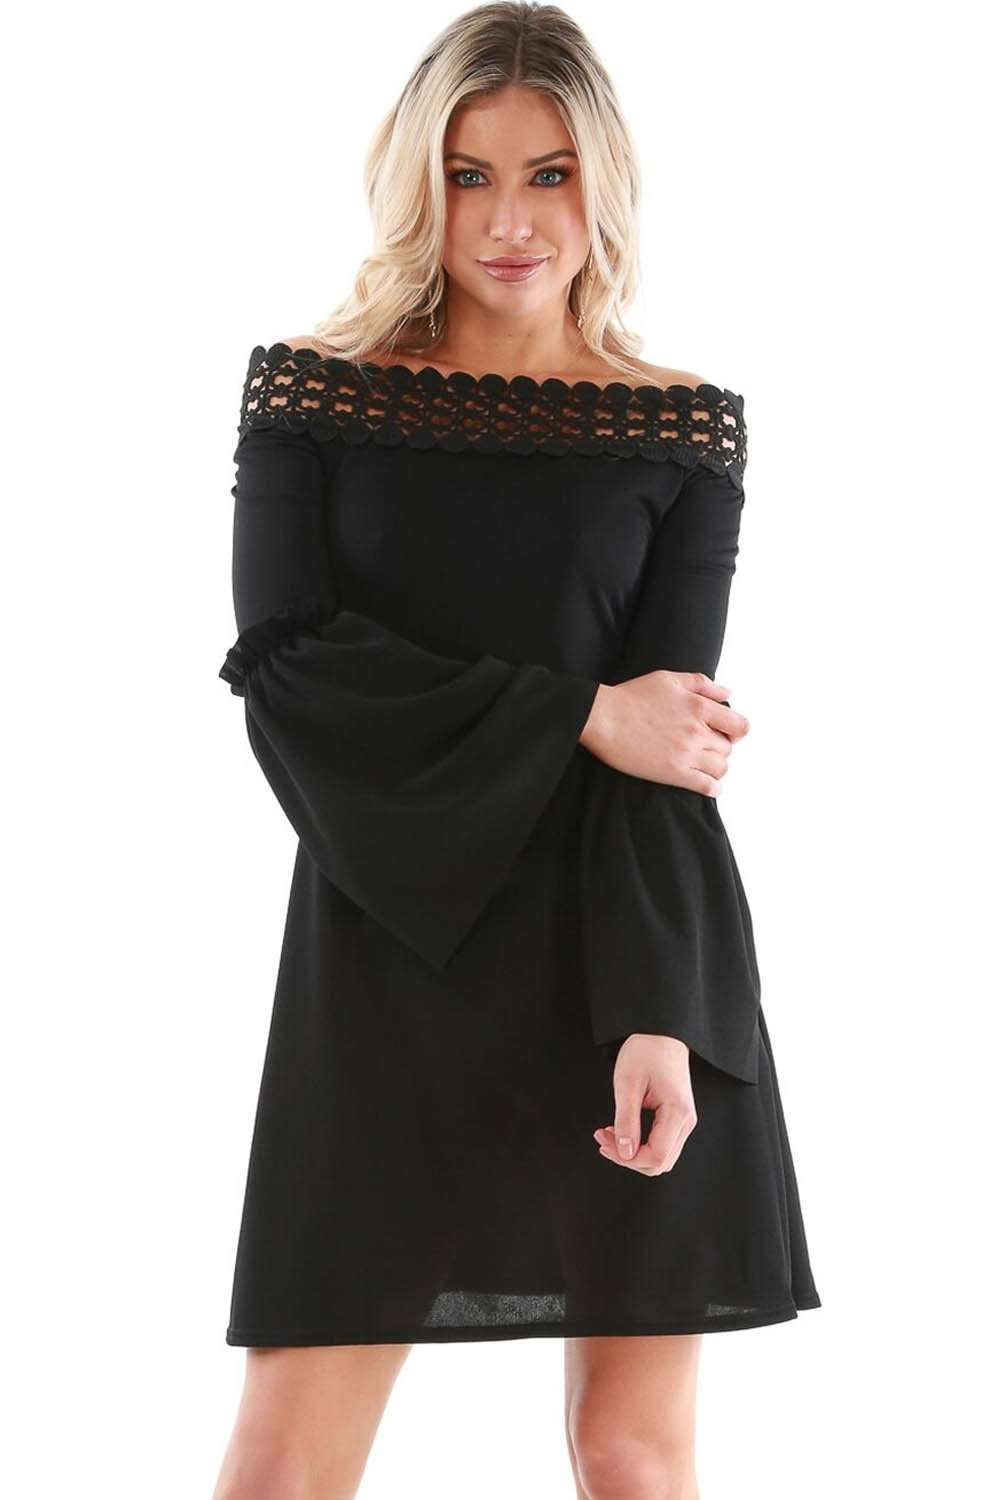 Harriet Crochet Bardot Flare Sleeve Dress - bejealous-com